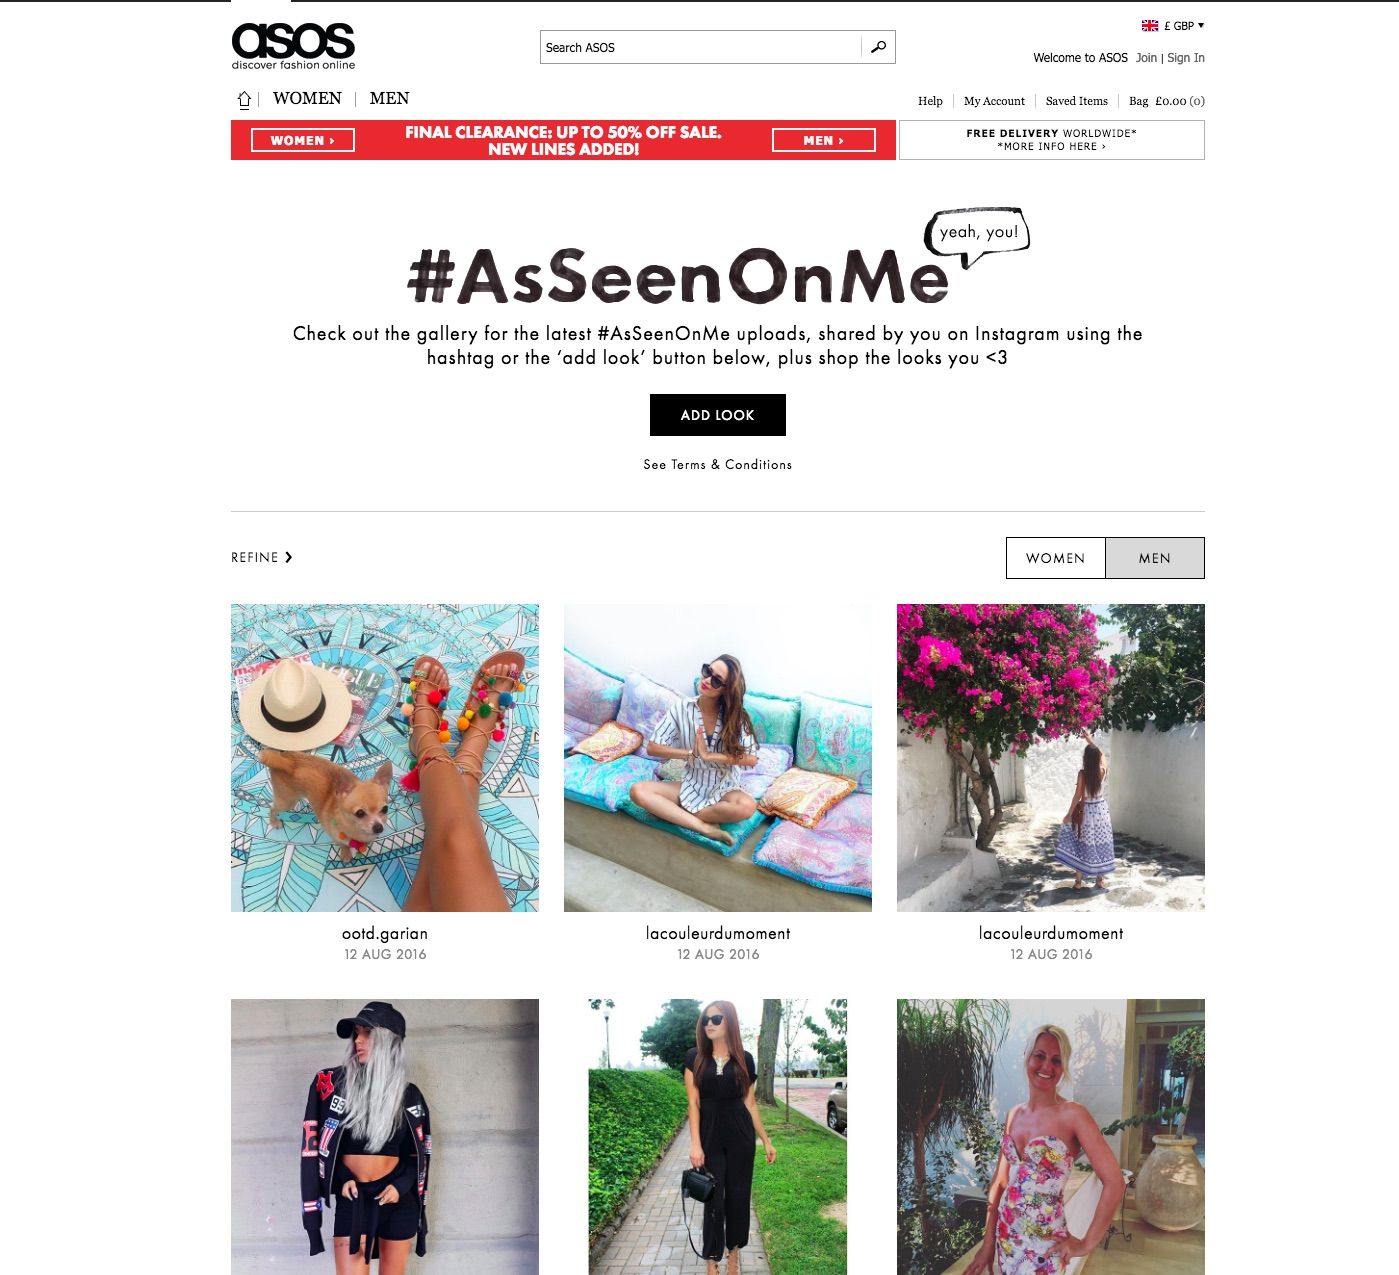 ASOS Customer Engagement with UGC